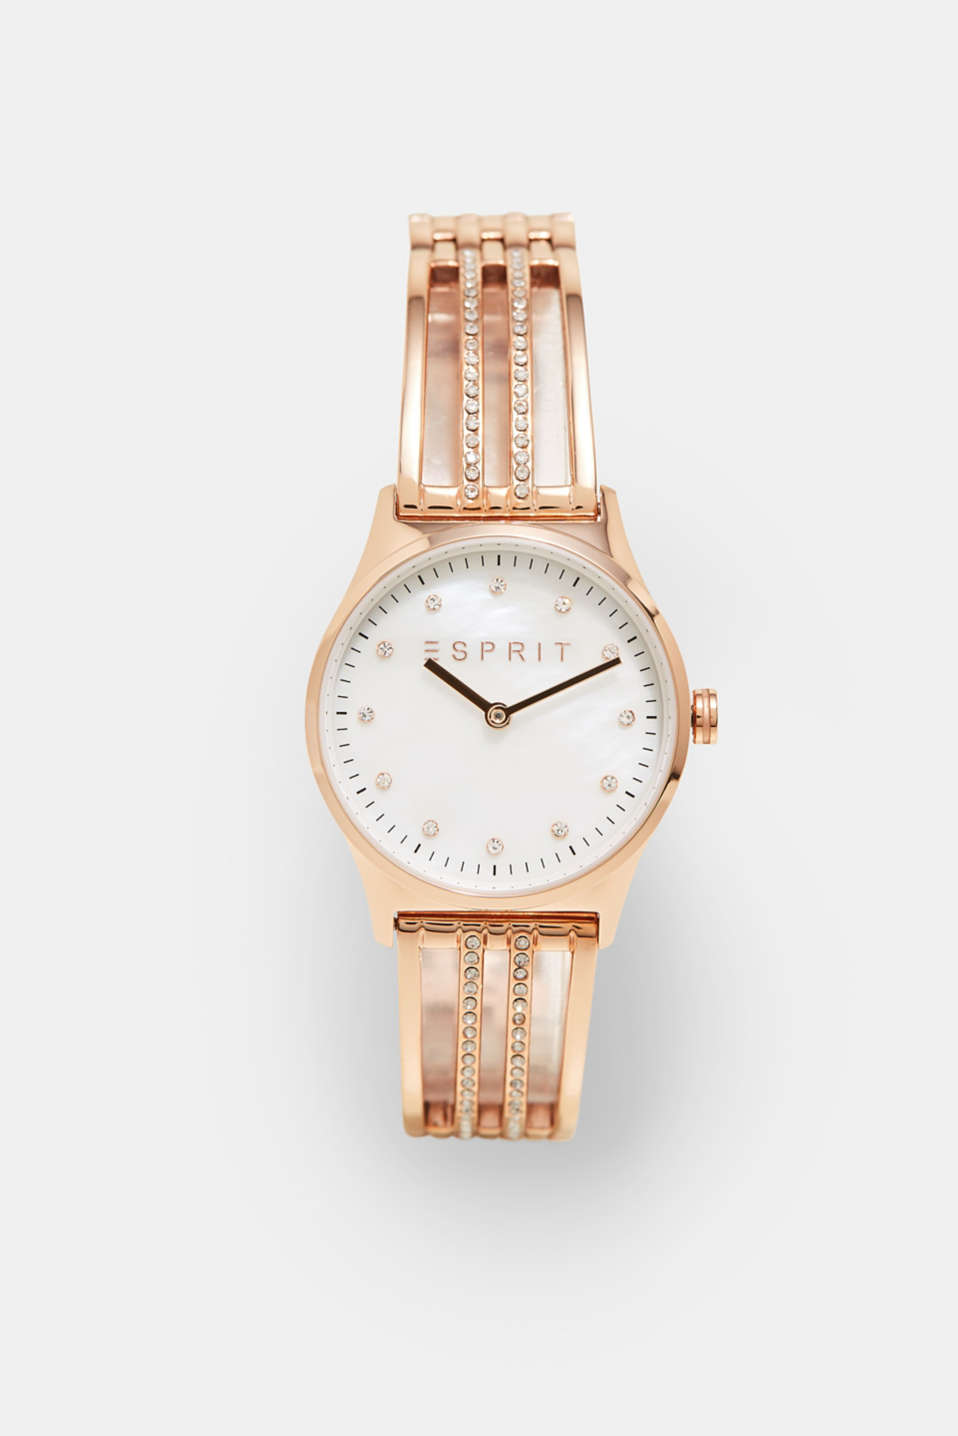 Esprit - Rose gold watch with zirconia